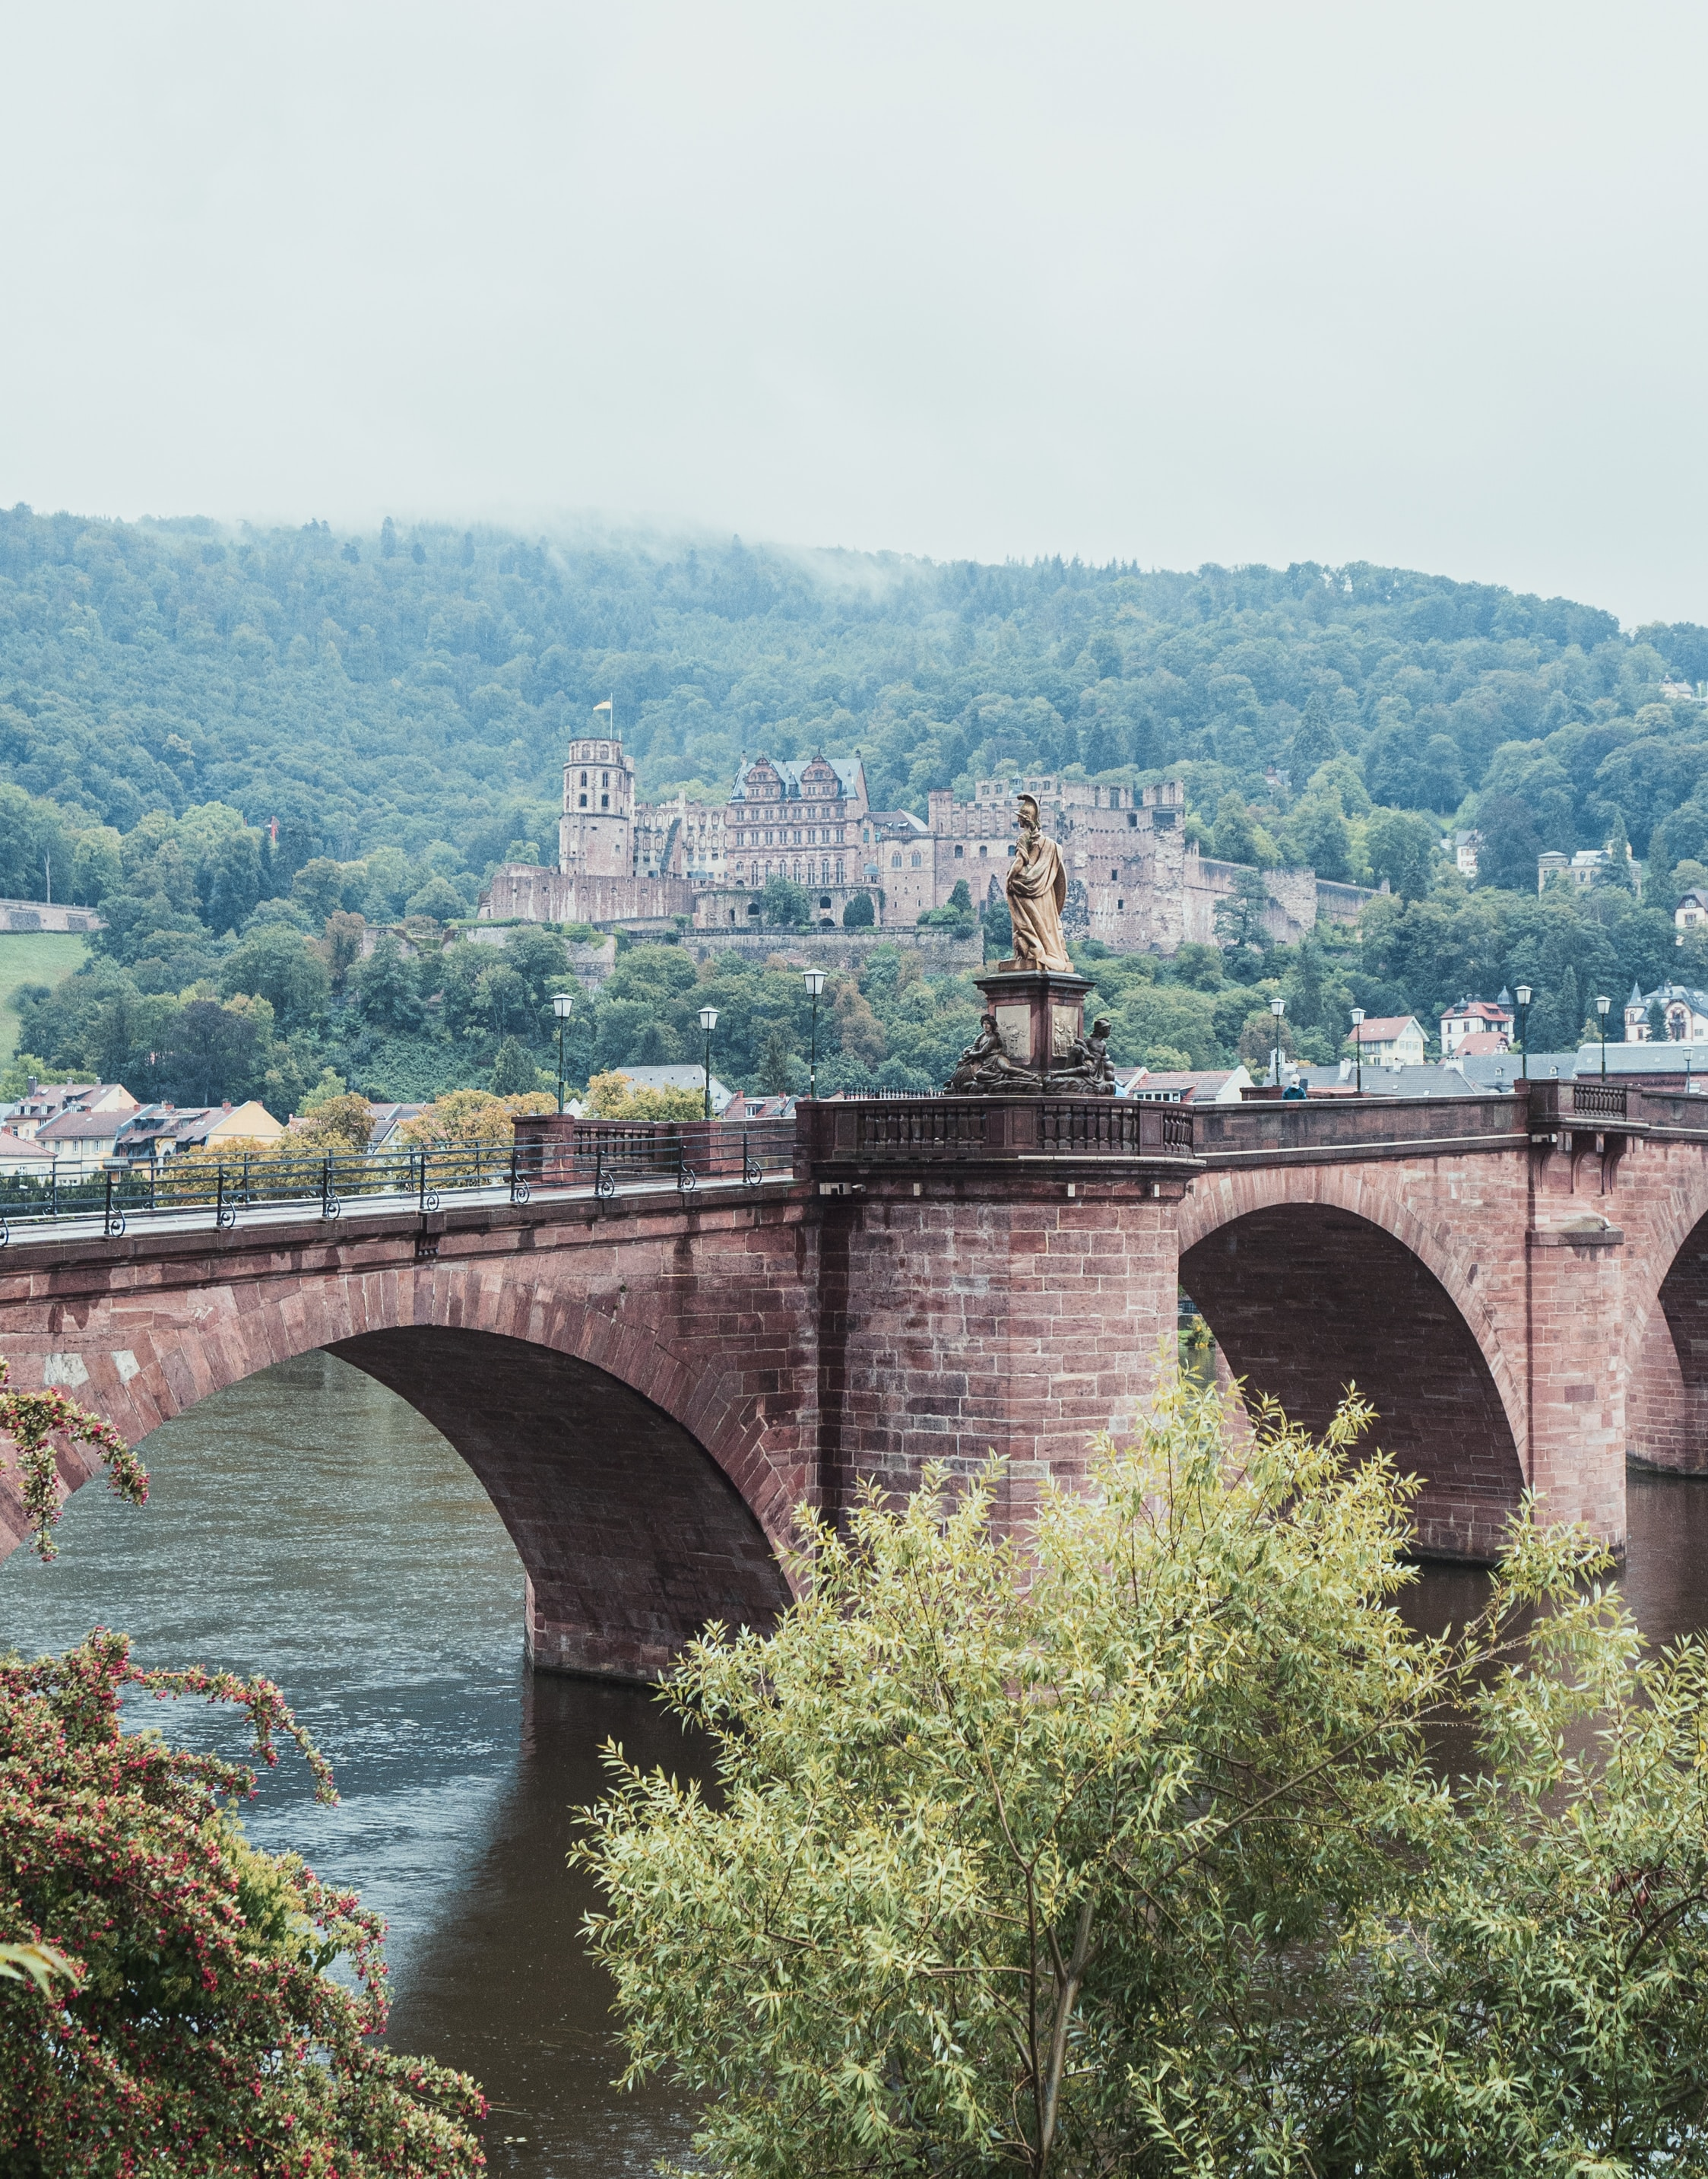 The allure of the small University town of Heidelberg